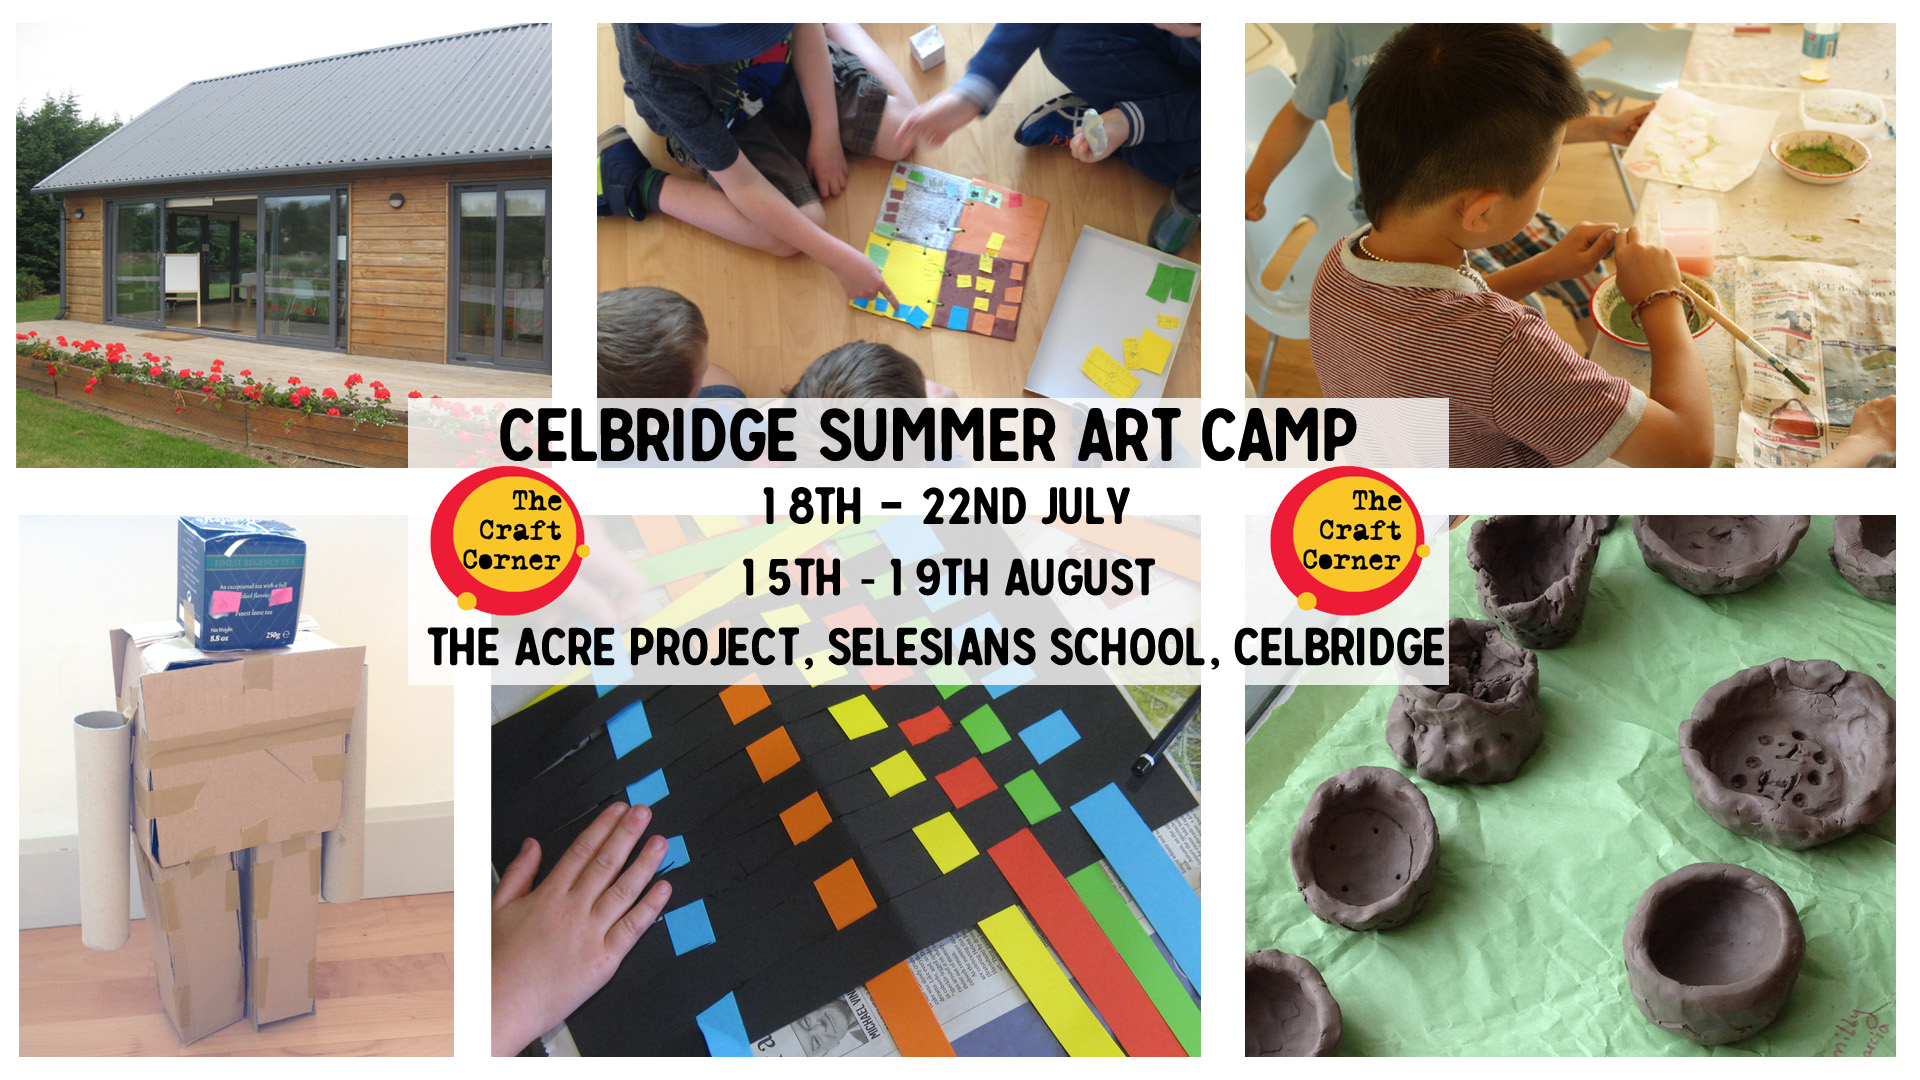 celbridge summer arts and craft camp summer 2016 with the craft corner